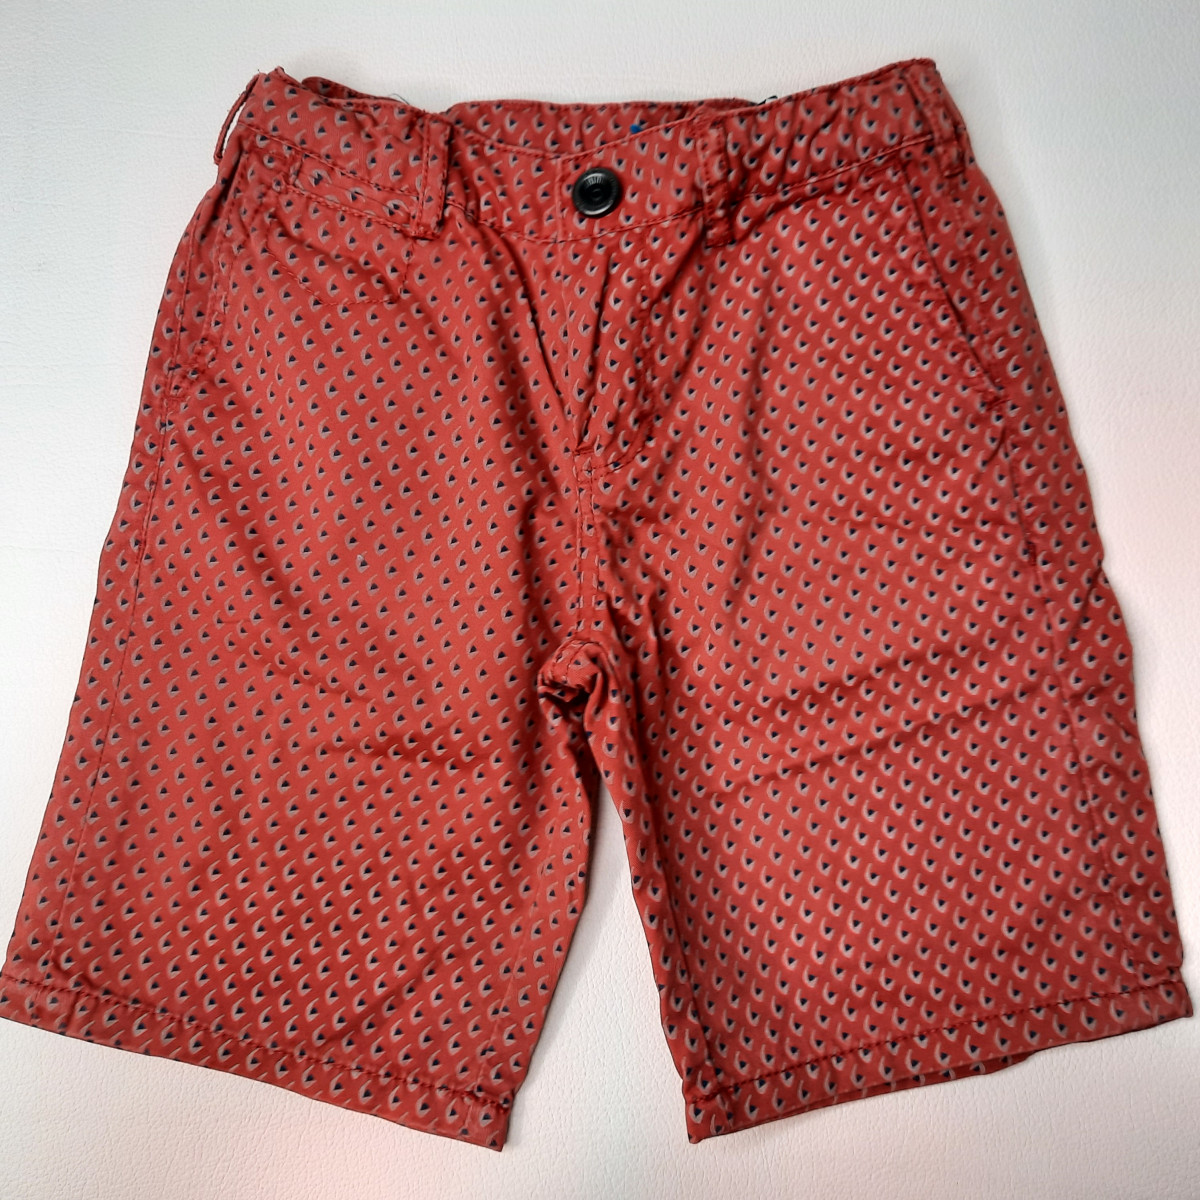 Shorts, Bermudas - photo 18